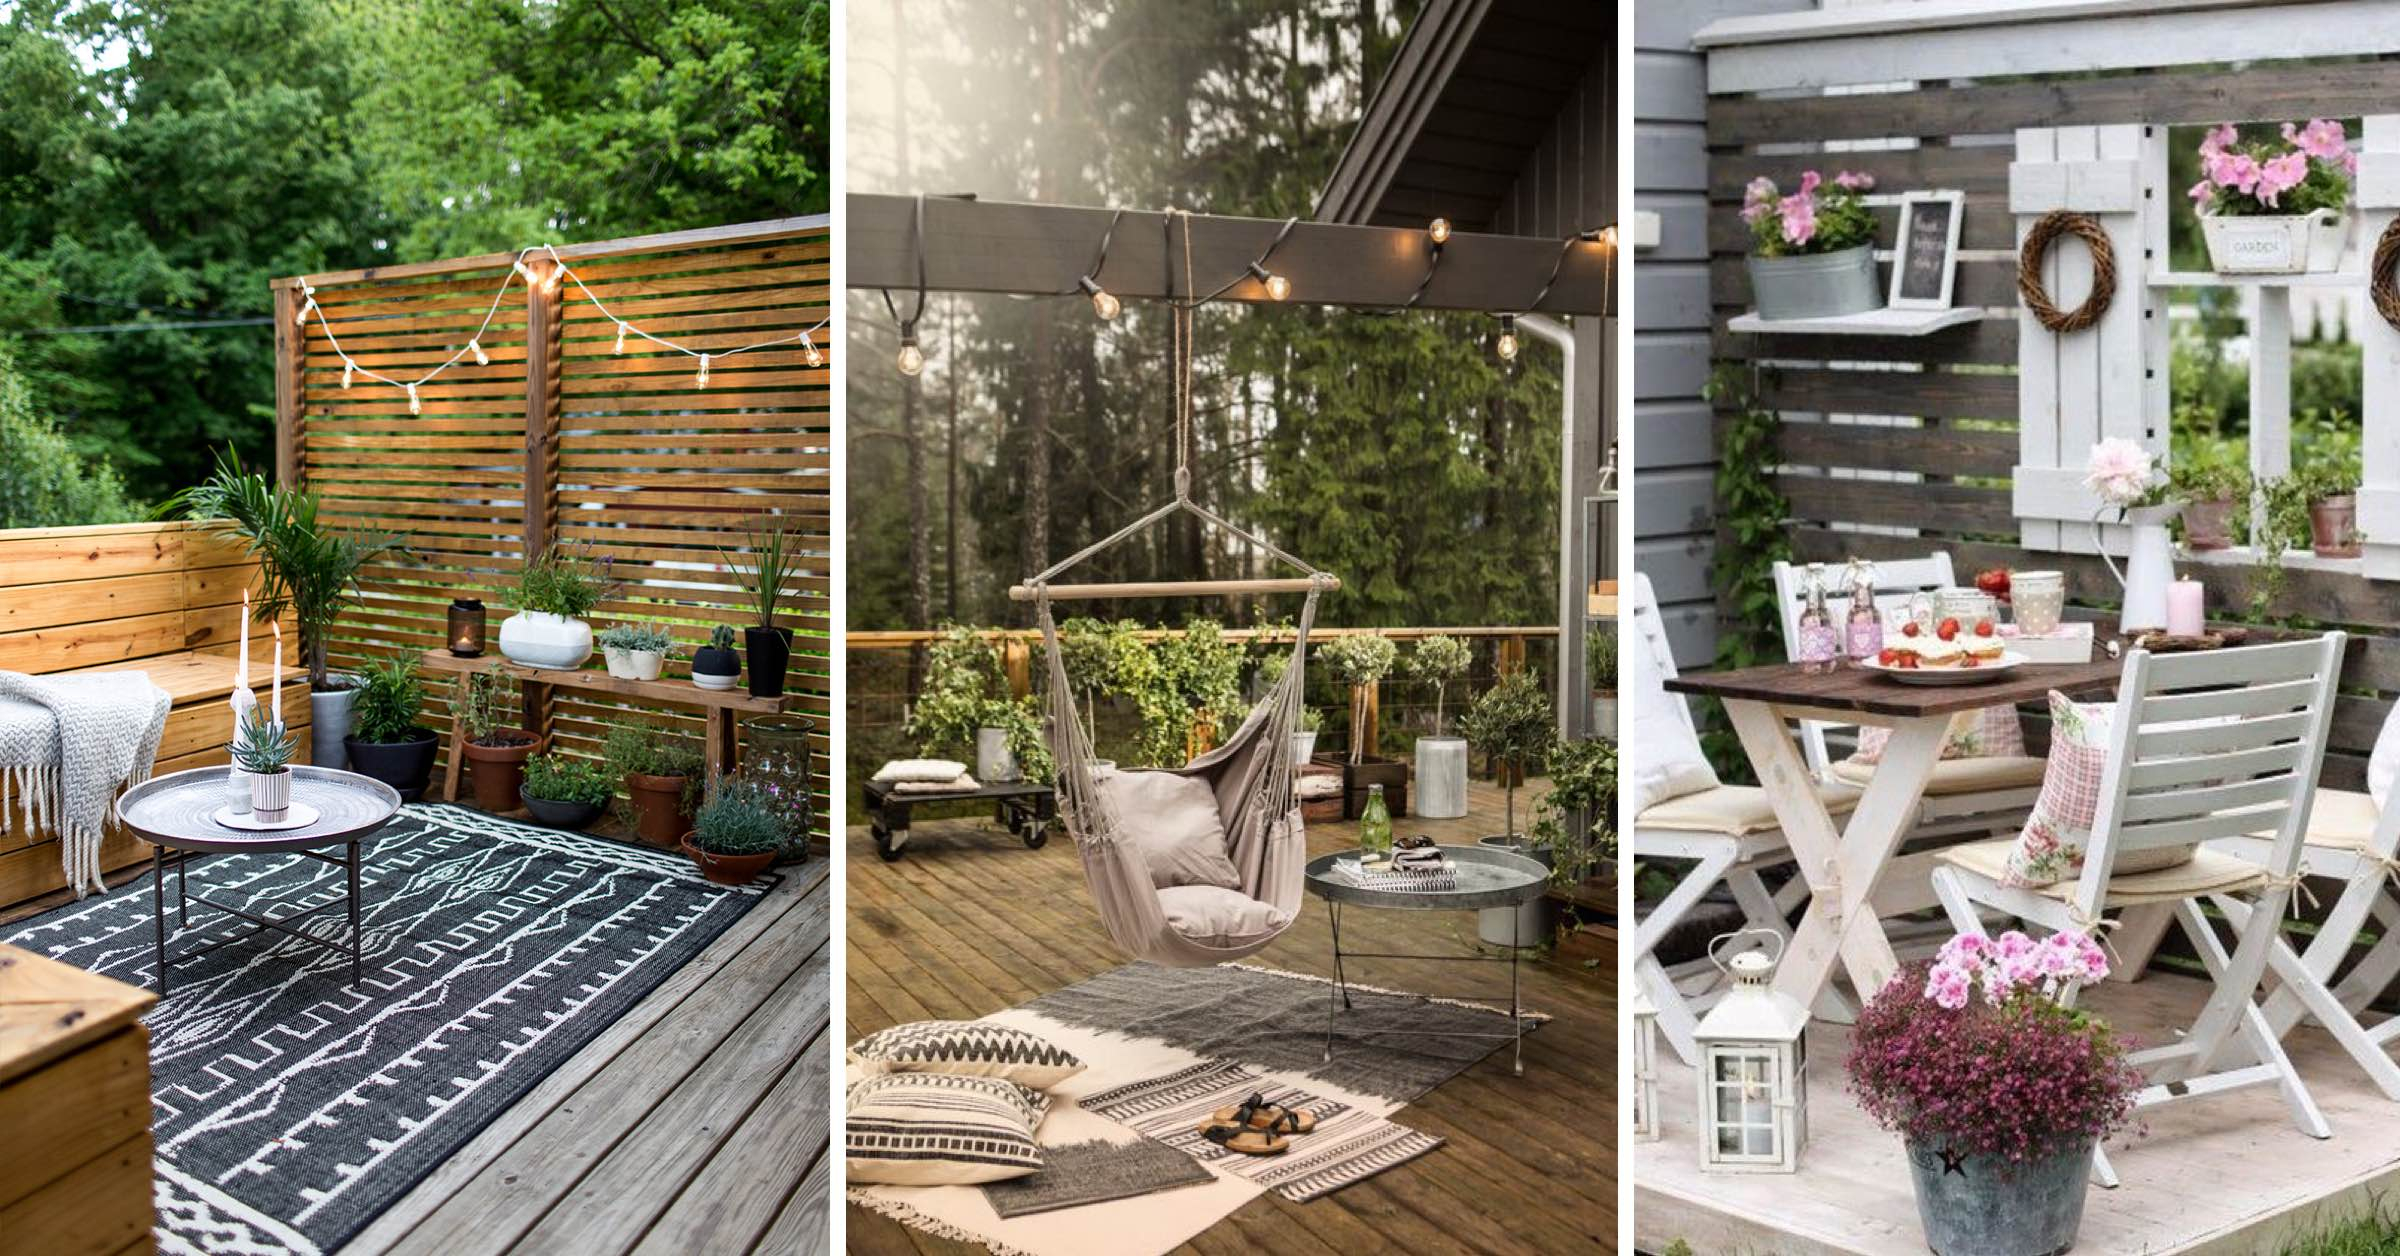 14 Brilliant Small Outdoor Space Design Ideas That Will Totally Awe within 14 Smart Concepts of How to Makeover Ideas For Small Backyard Spaces